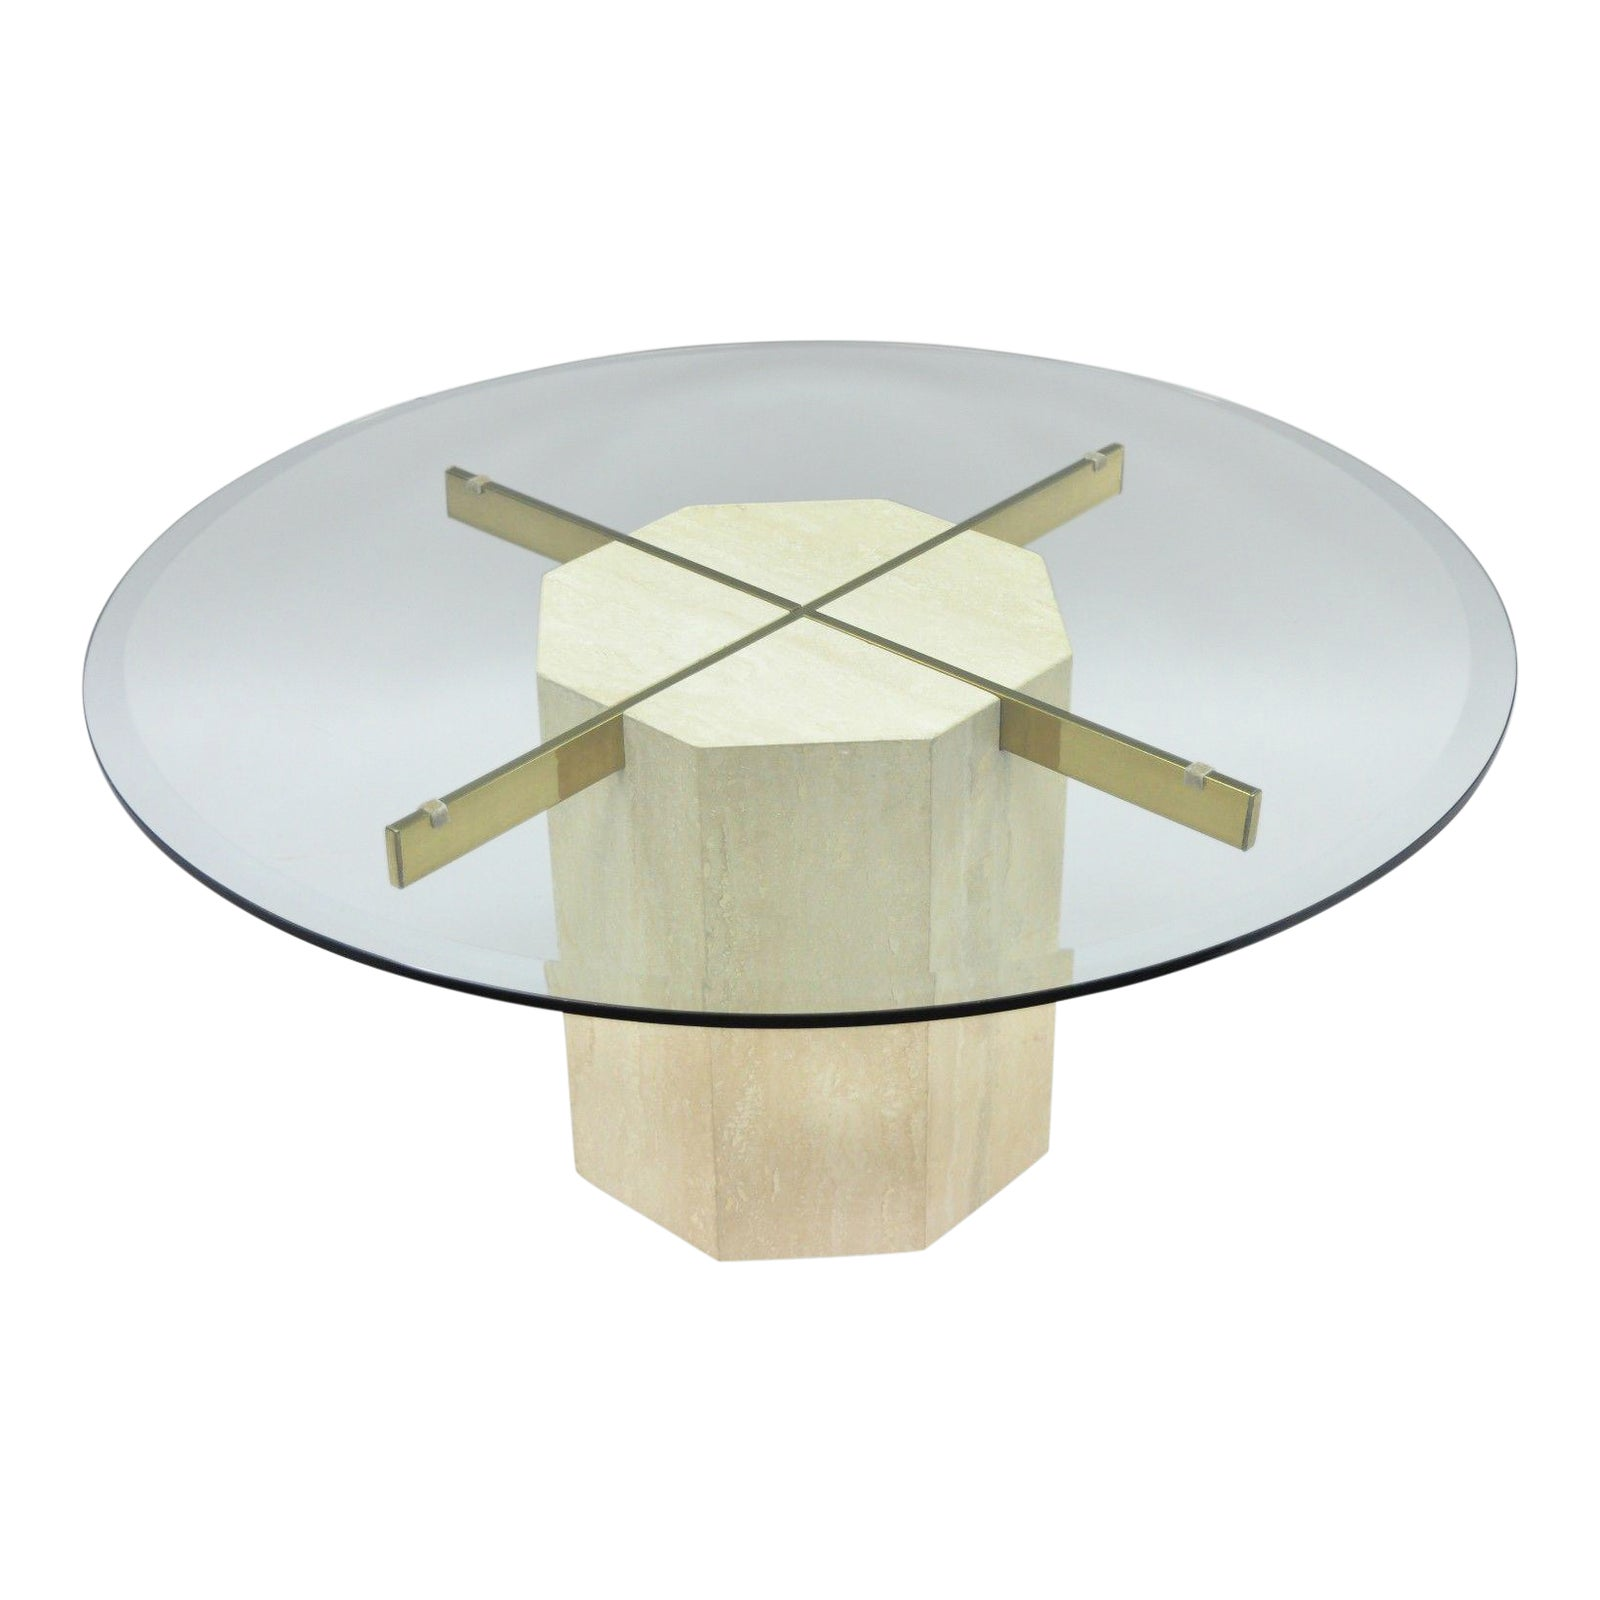 Artedi Travertine Brass Round Glass Coffee Table Chairish